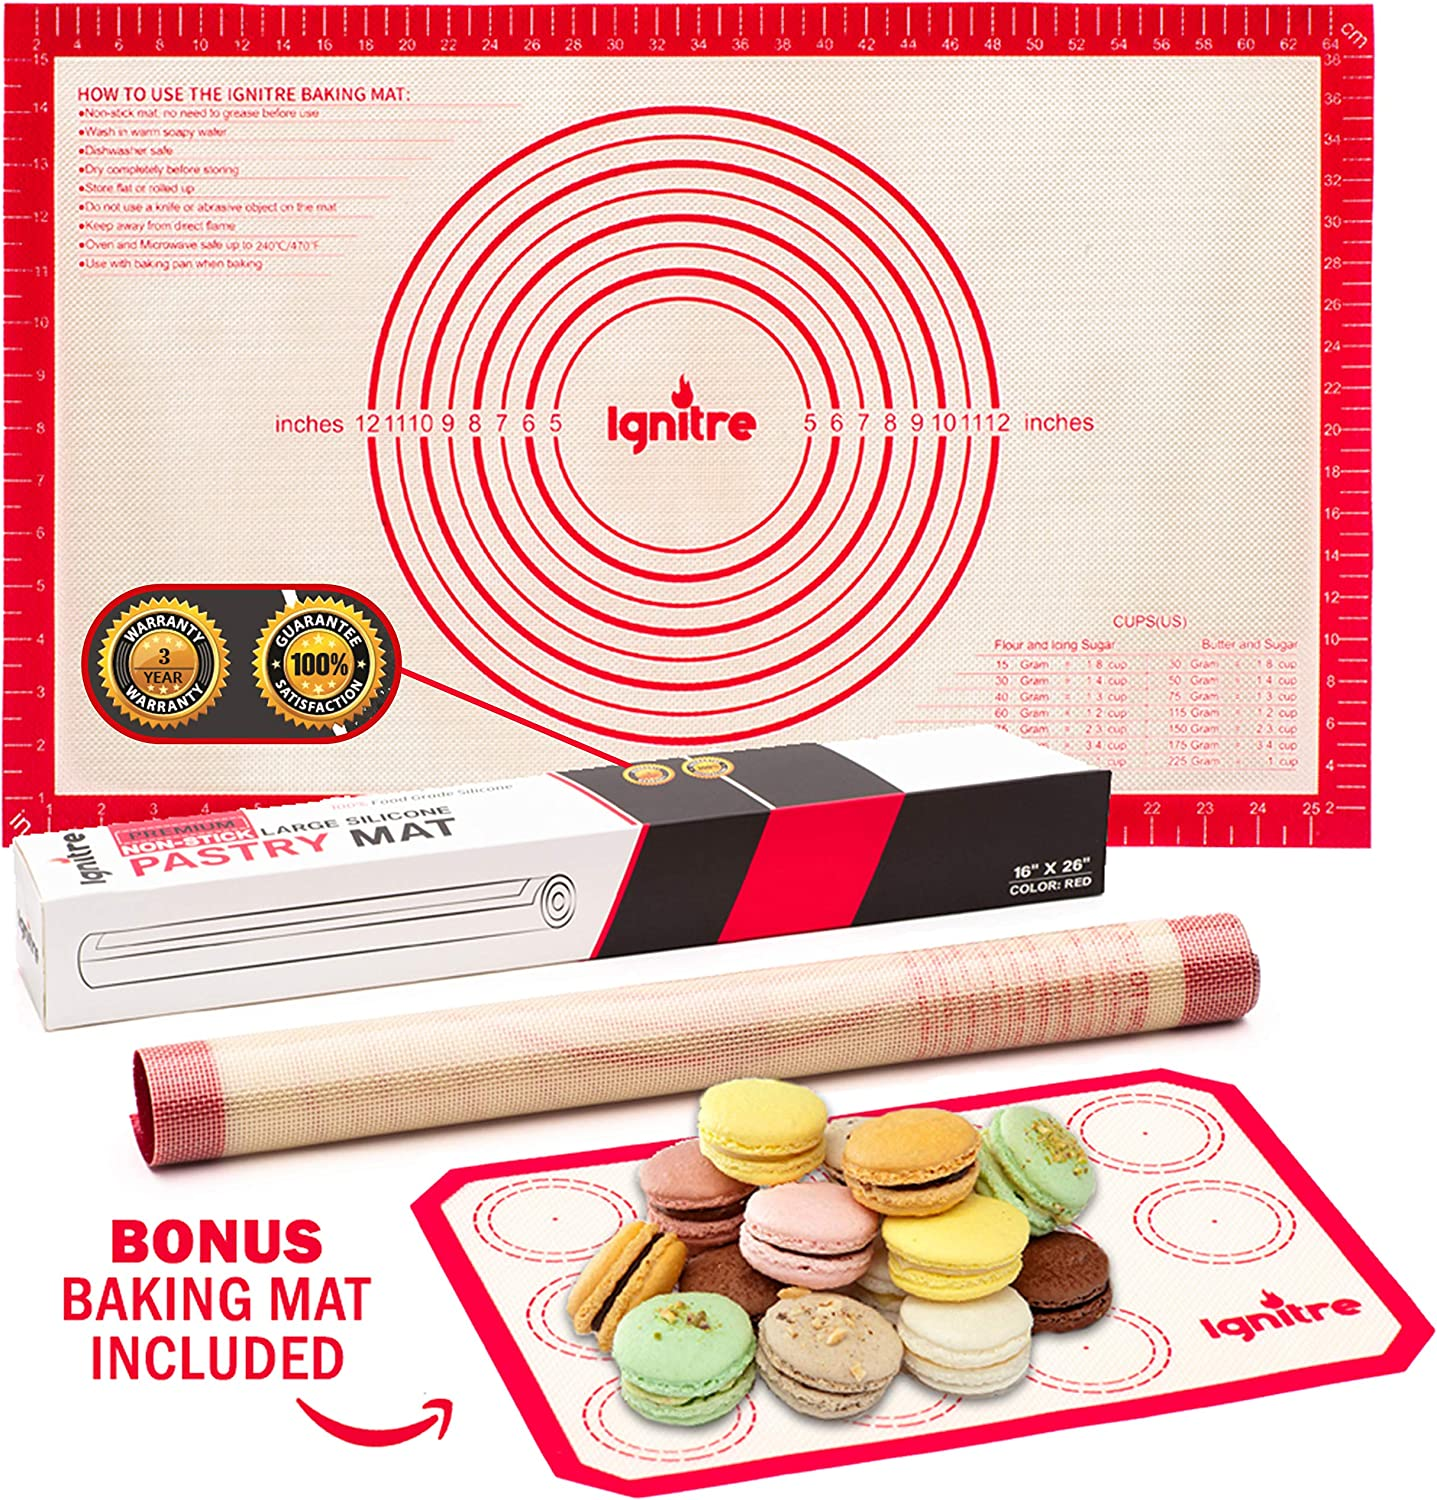 """Extra Large Silicone Pastry Mat and Baking Sheet - Non Stick Thick Non-slip Reusable Mats with Measurements   Uses - Rolling Fondant   Dough   Oven Liner   Counter mat   Macaroon   Pie Crust 16"""" x 26"""""""